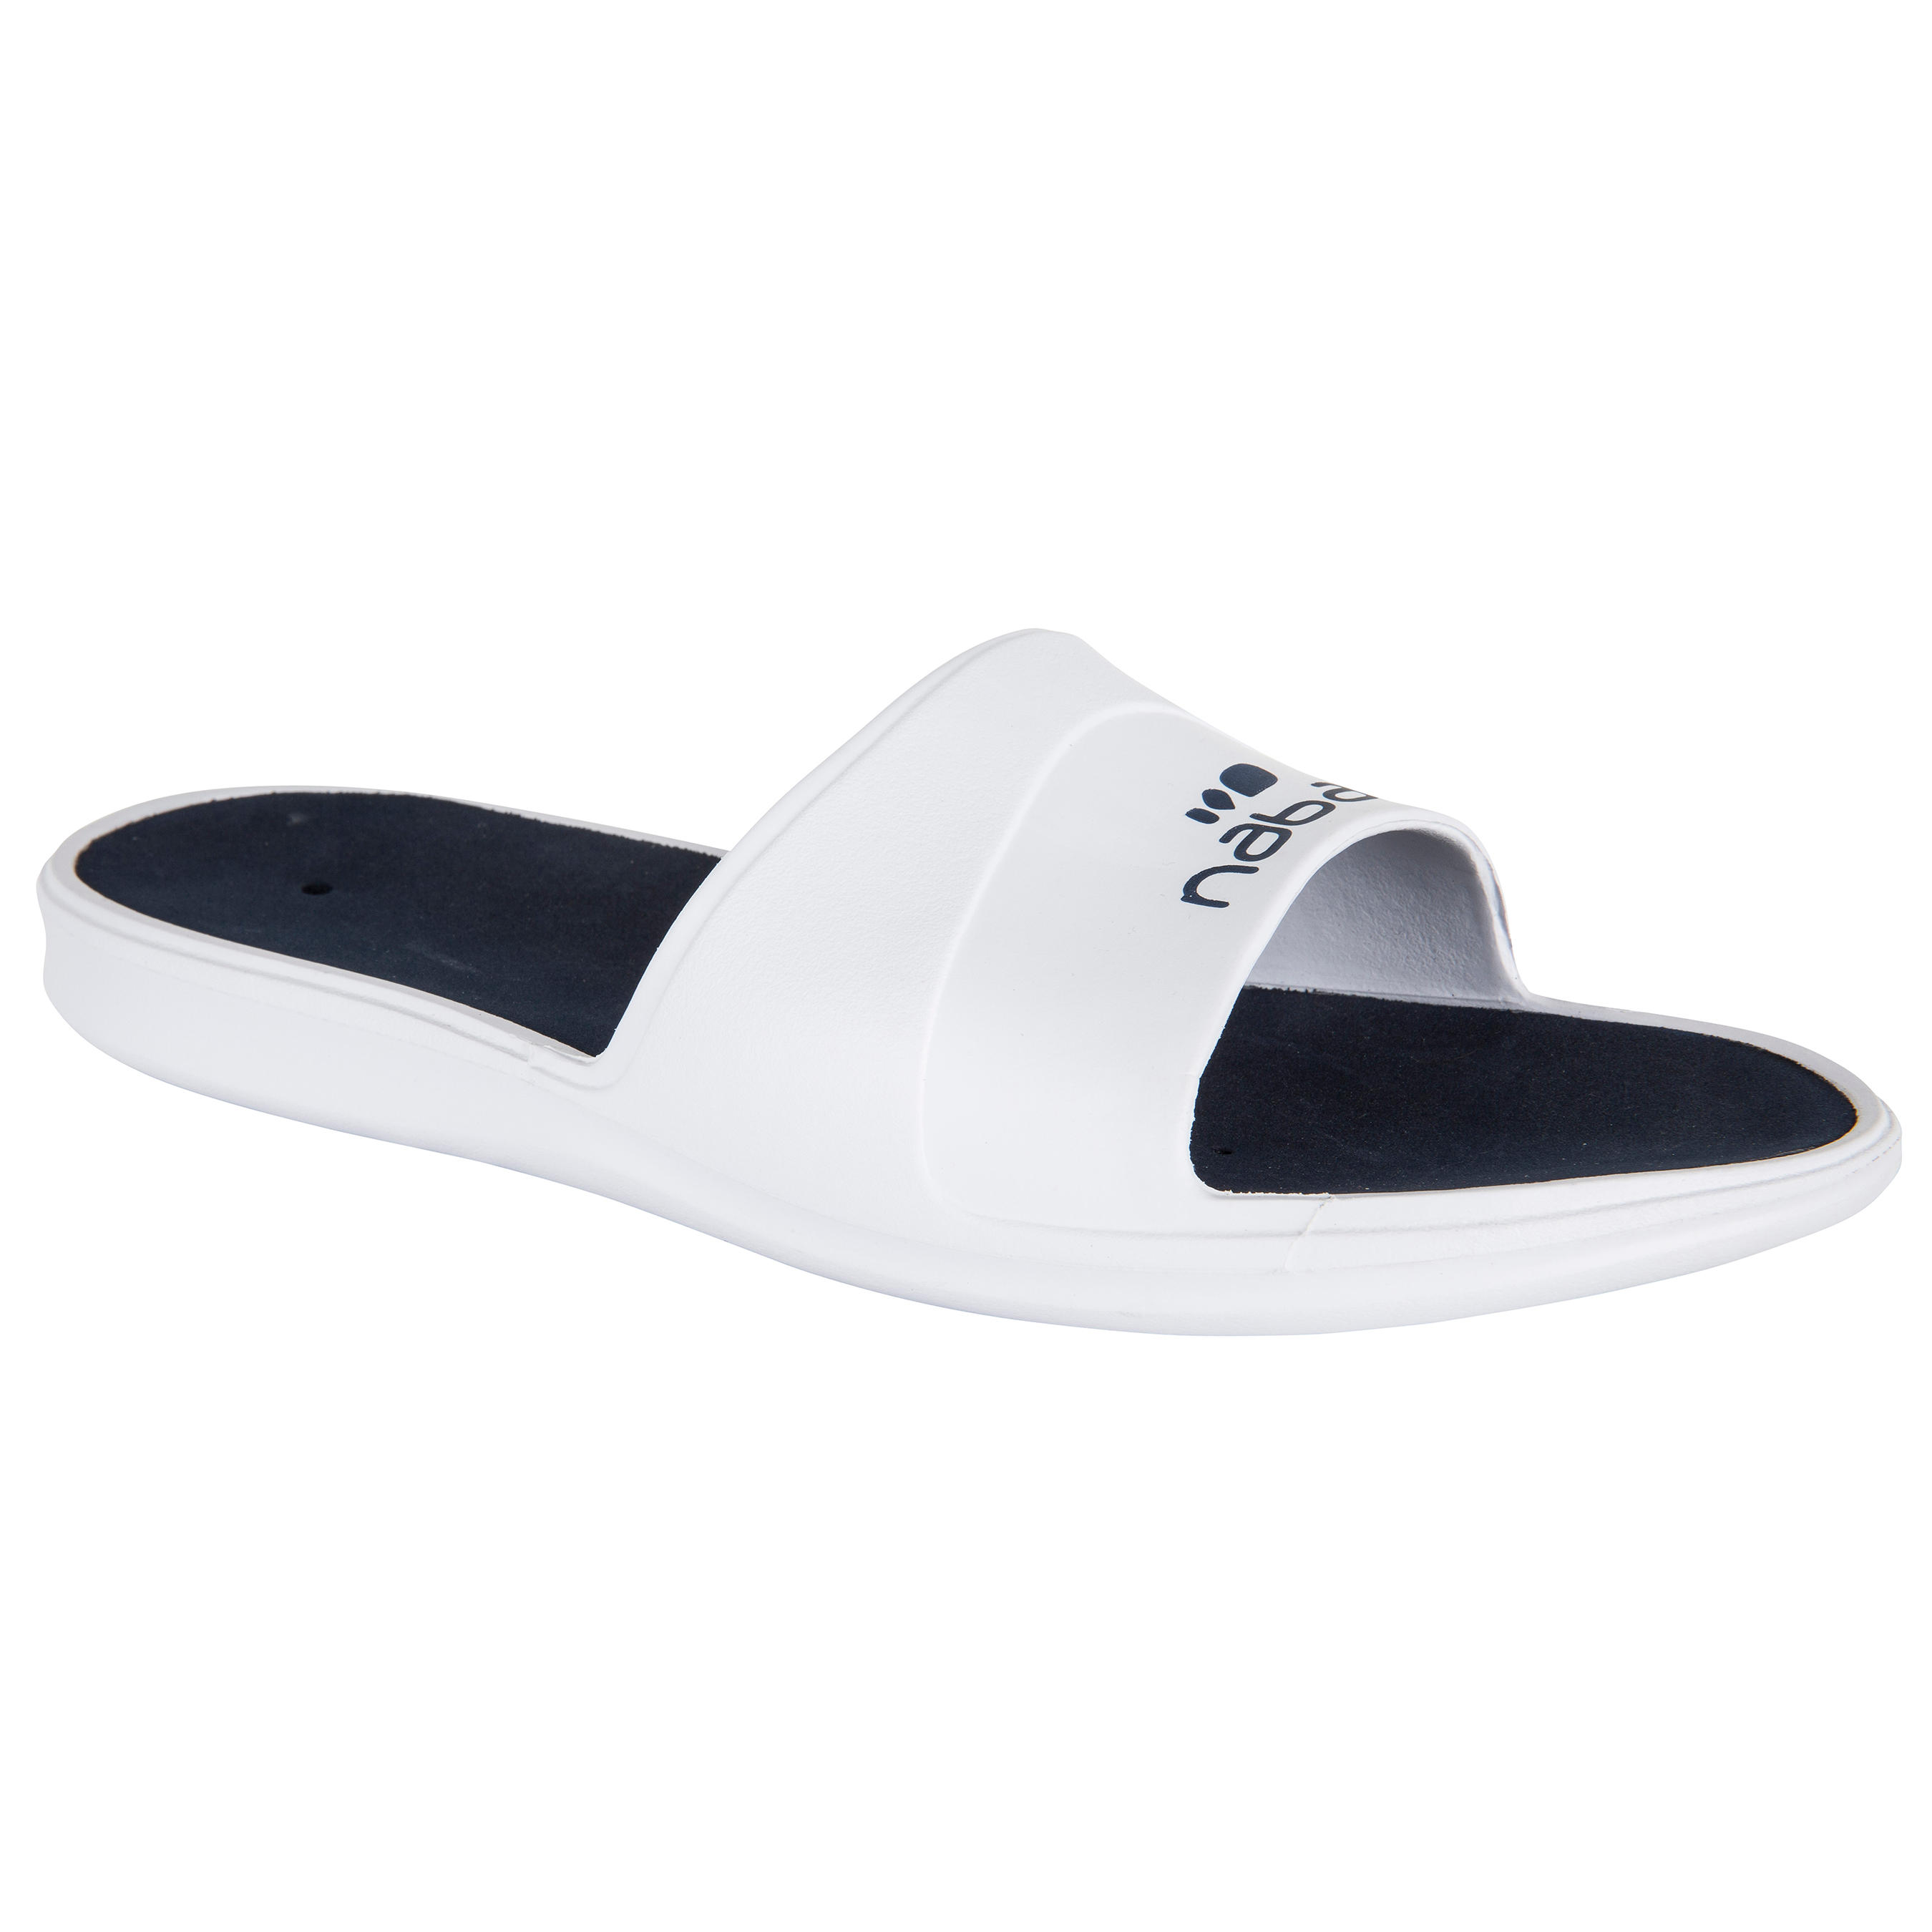 MEN'S METASLAP POOL SANDALS - WHITE BLUE